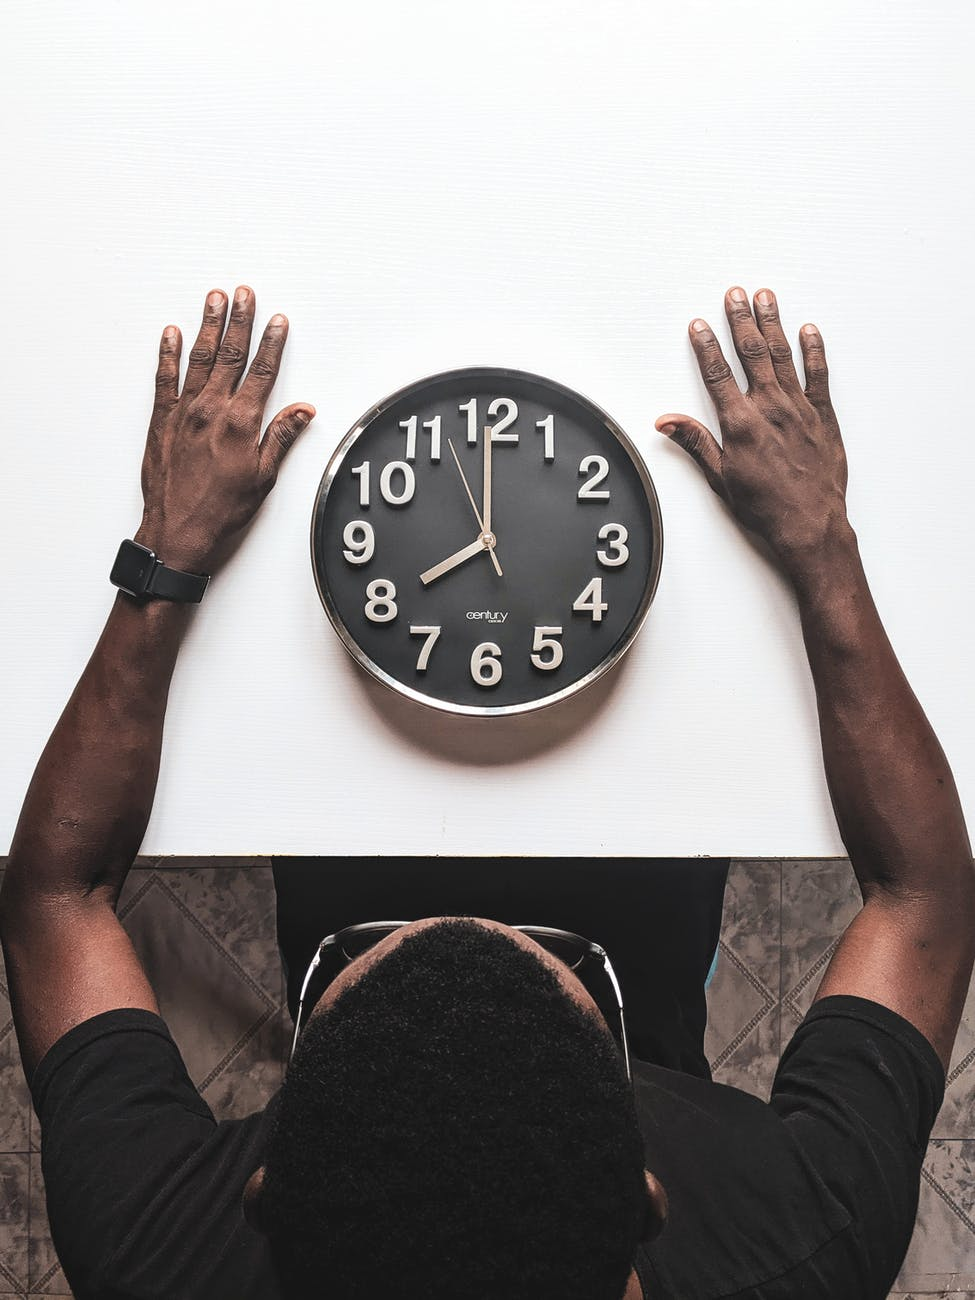 Black man with clock, image in use for article writing sequels for beginners.